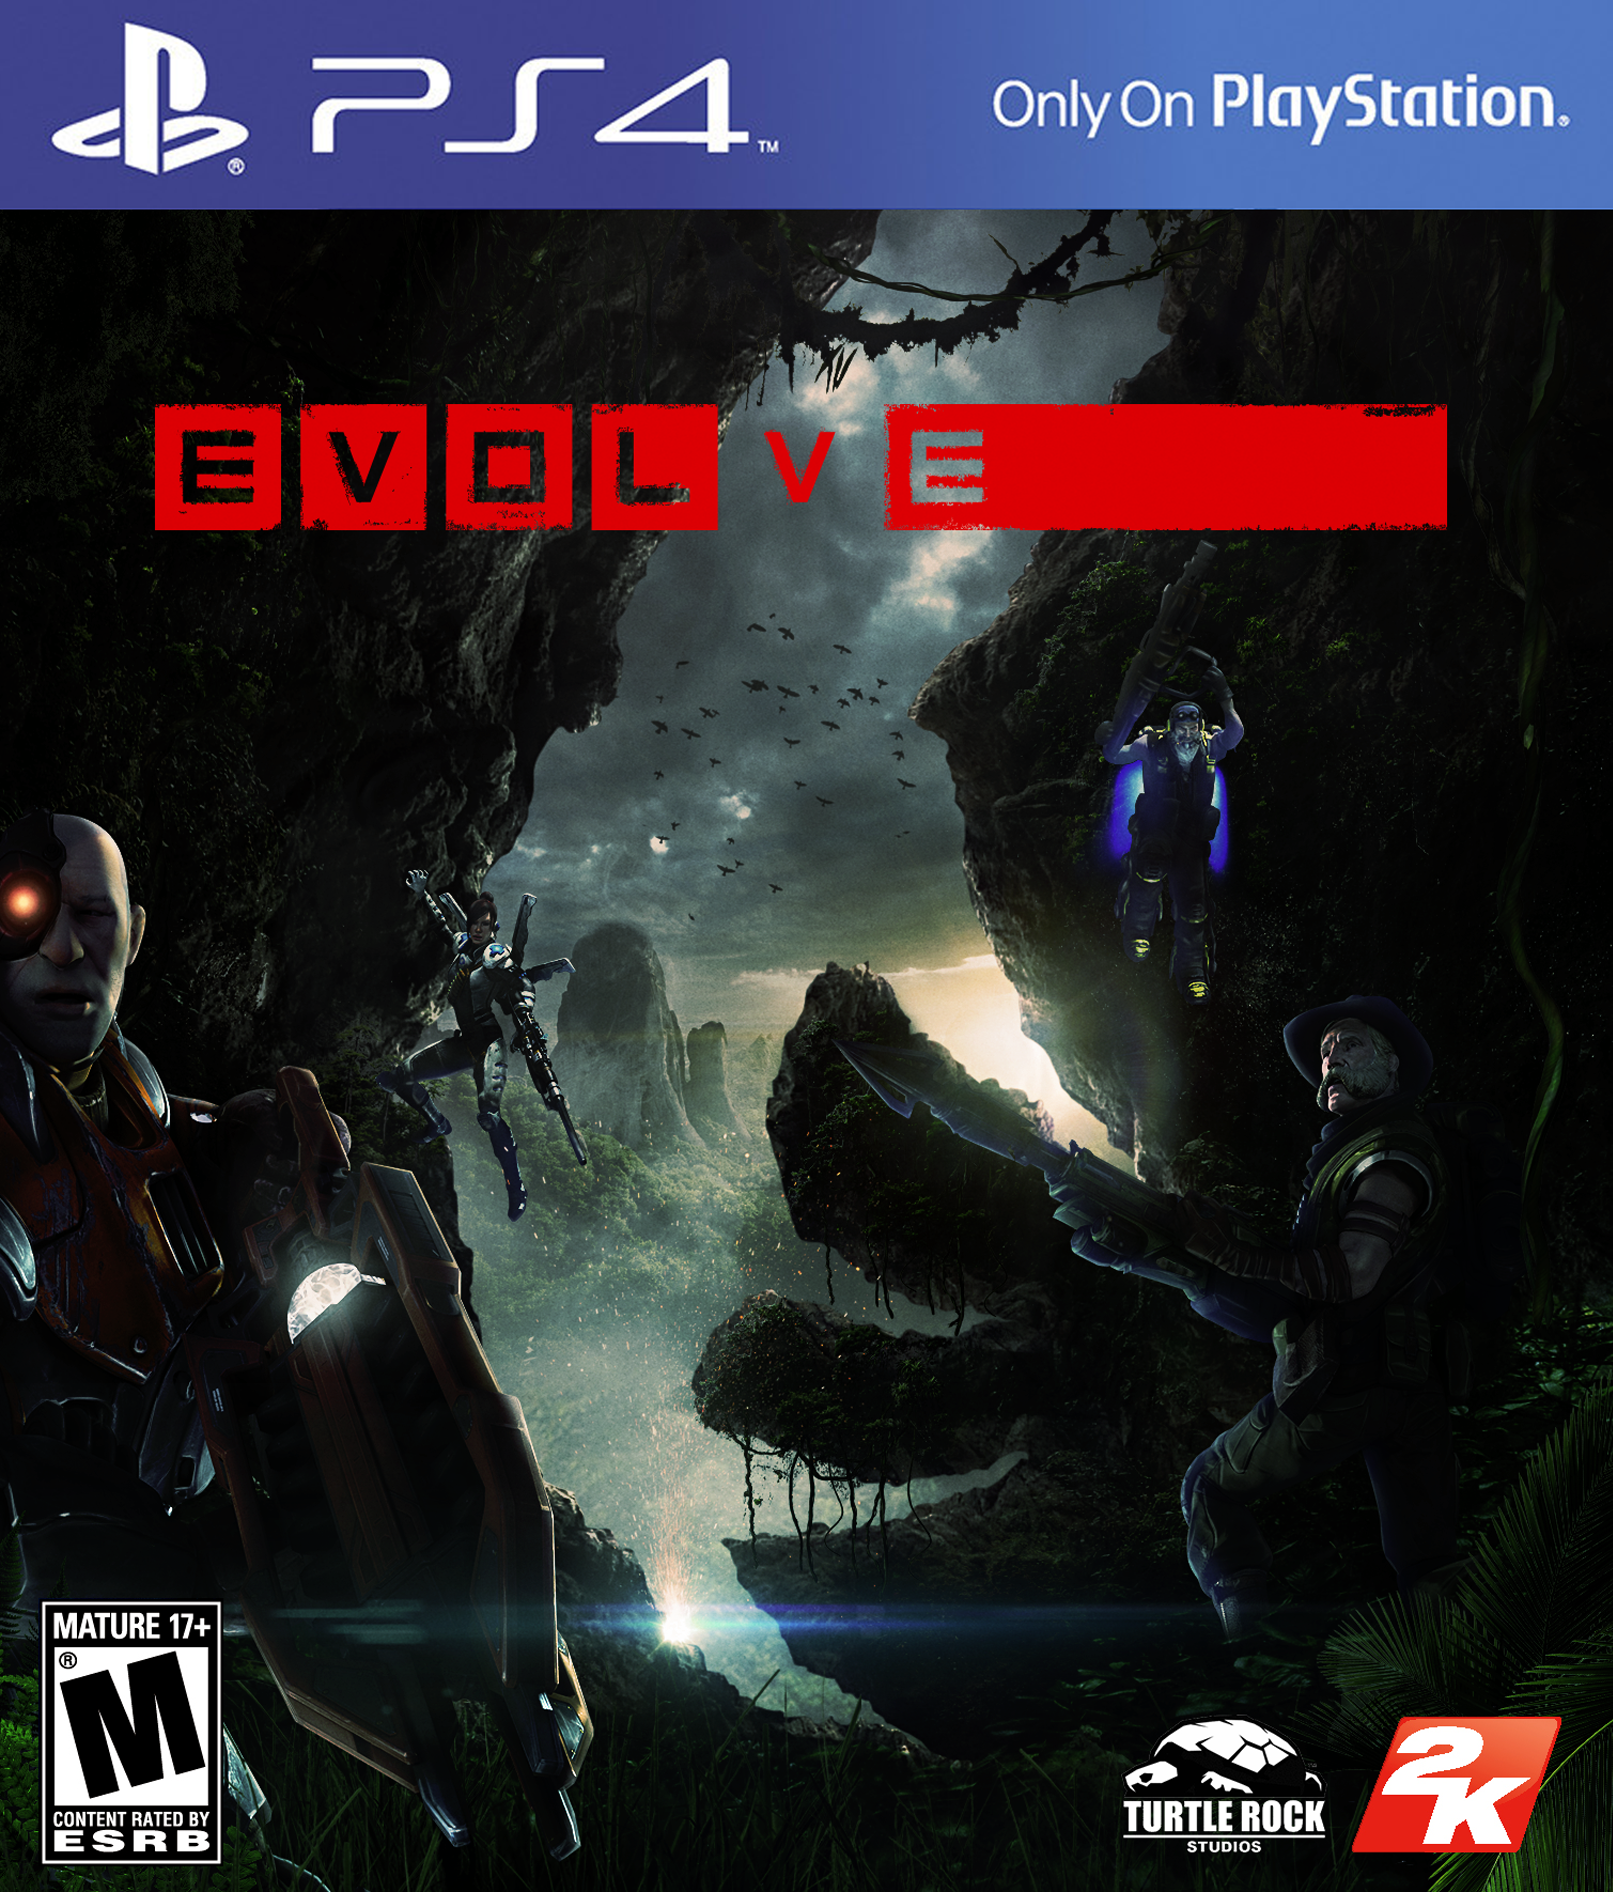 Pin by James Fletcher on KEY ART | Evolve game, Game art